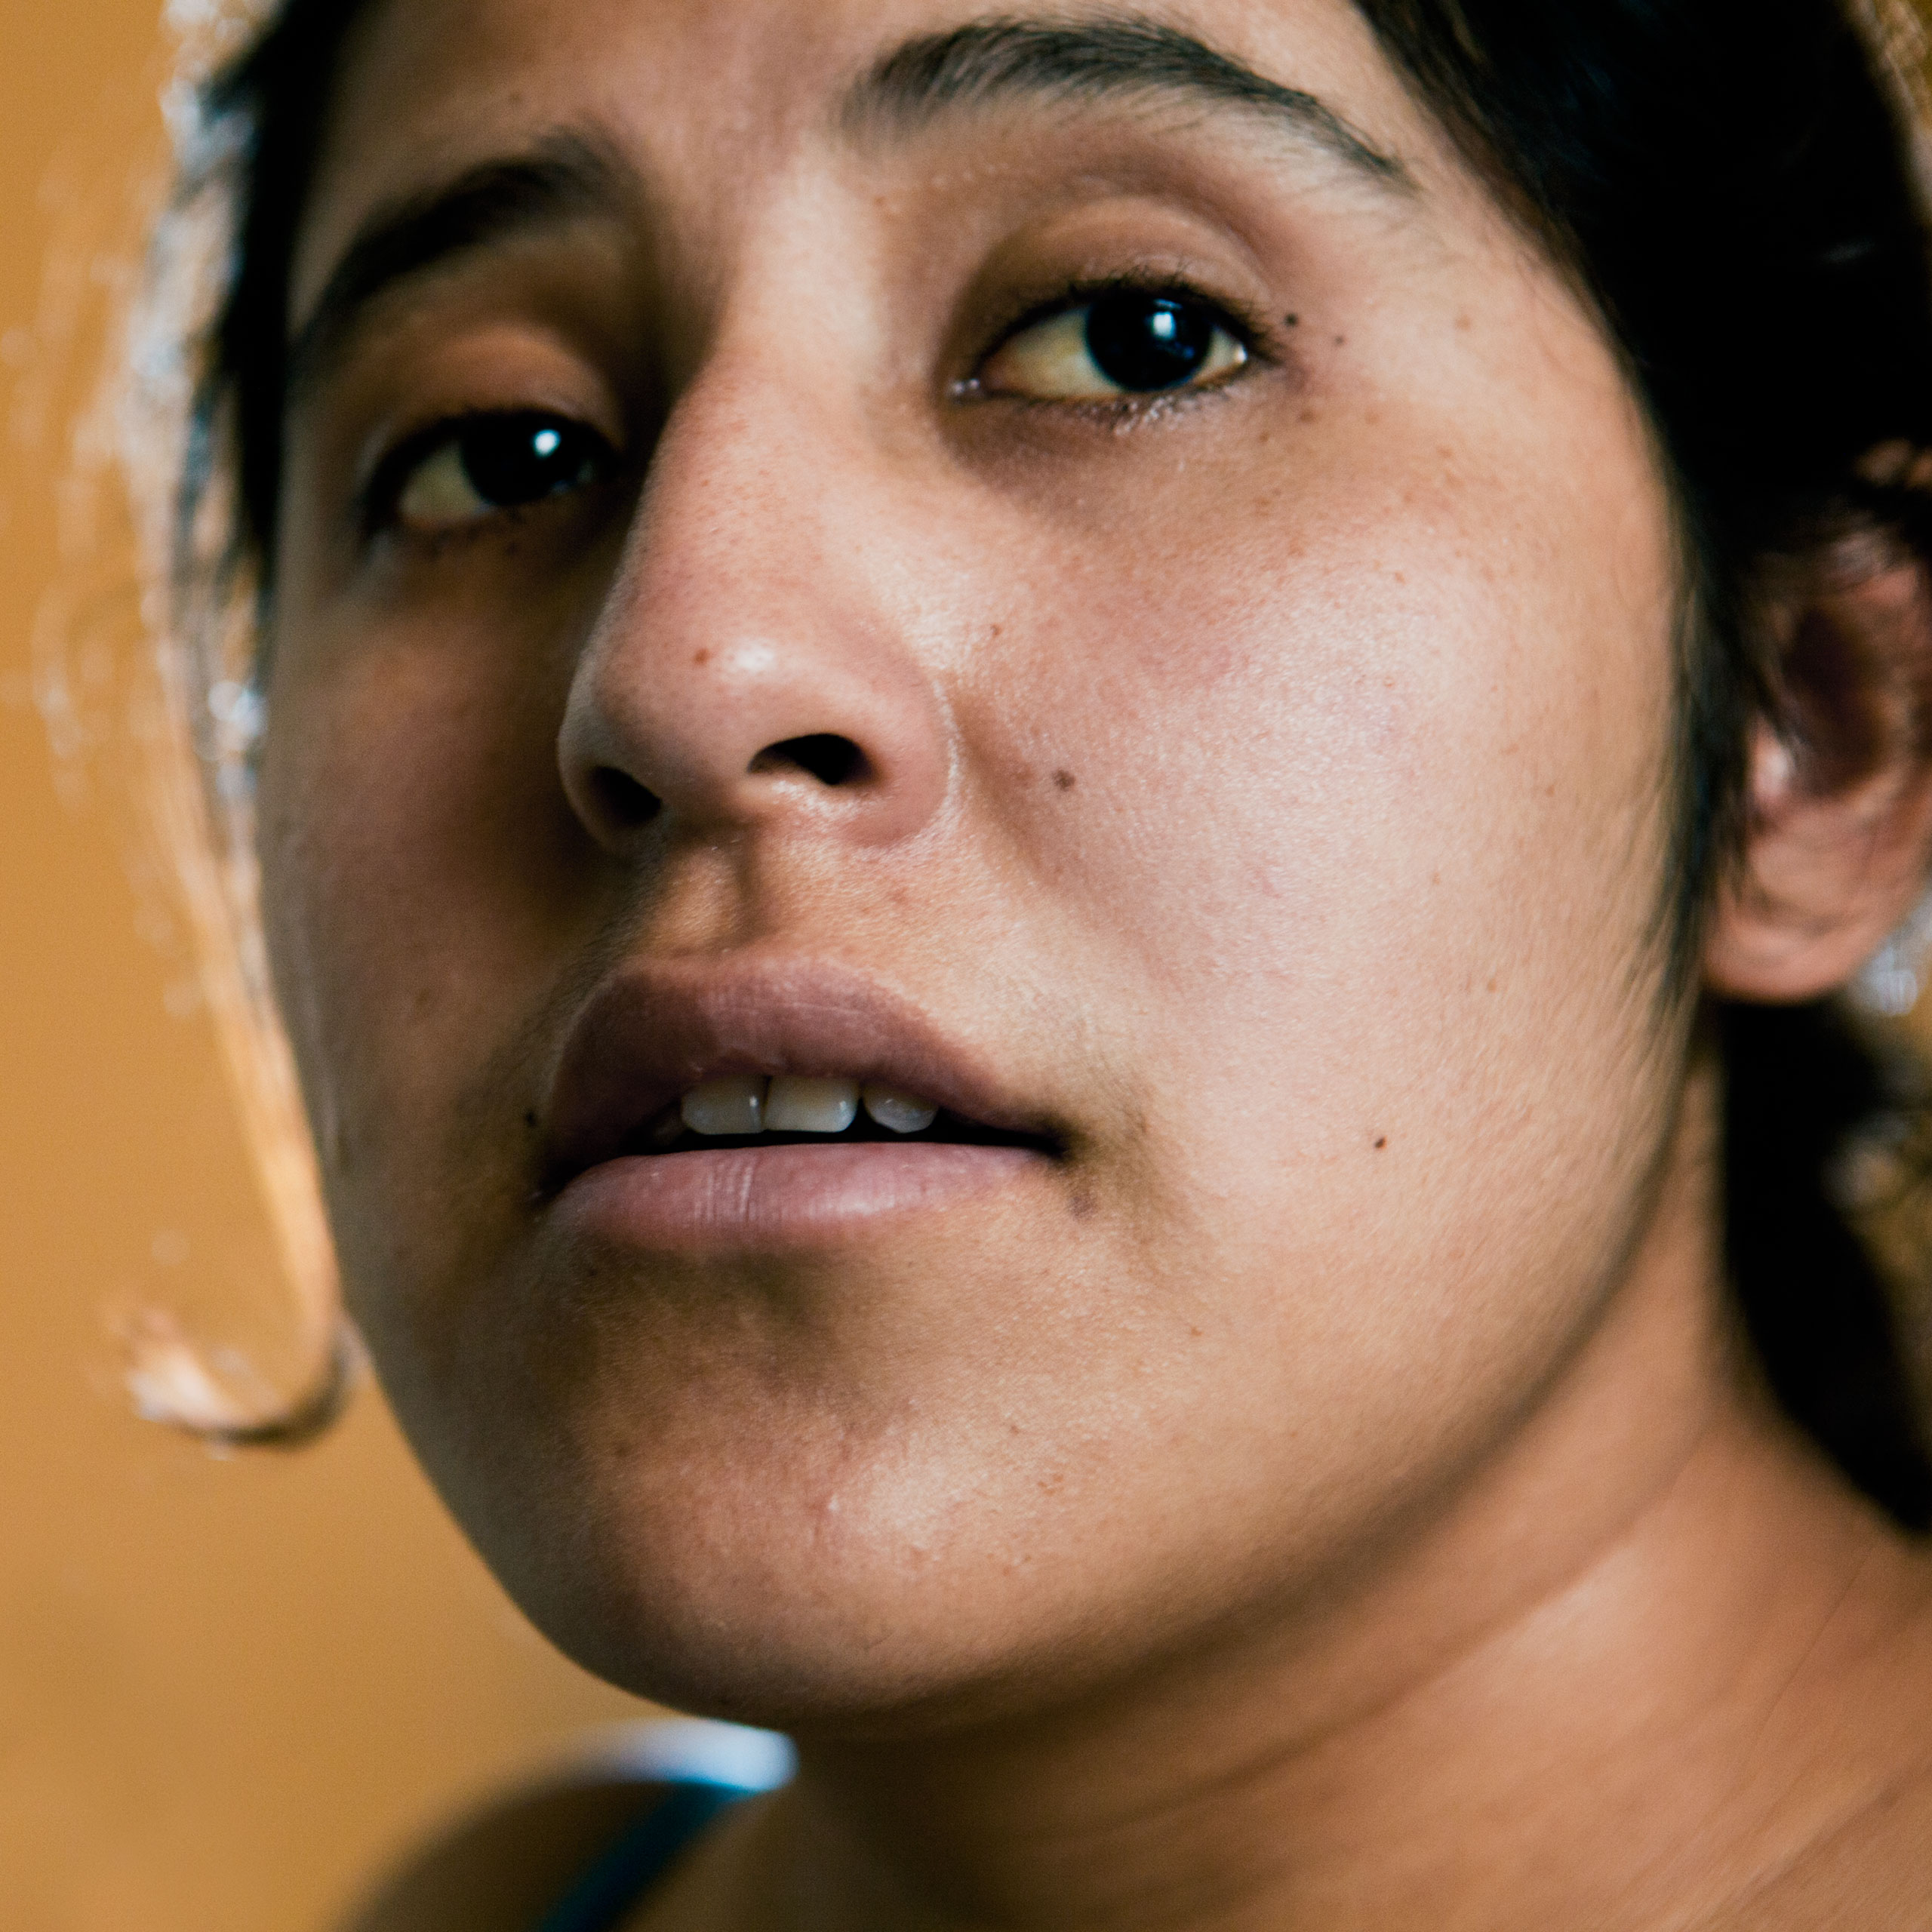 Juanita Monter, 22, in her home in Queens, New York in March, 2012. Originally from Zacualpan, in the state of Veracruz, Mexico, Monter has been in the U.S. for four years.